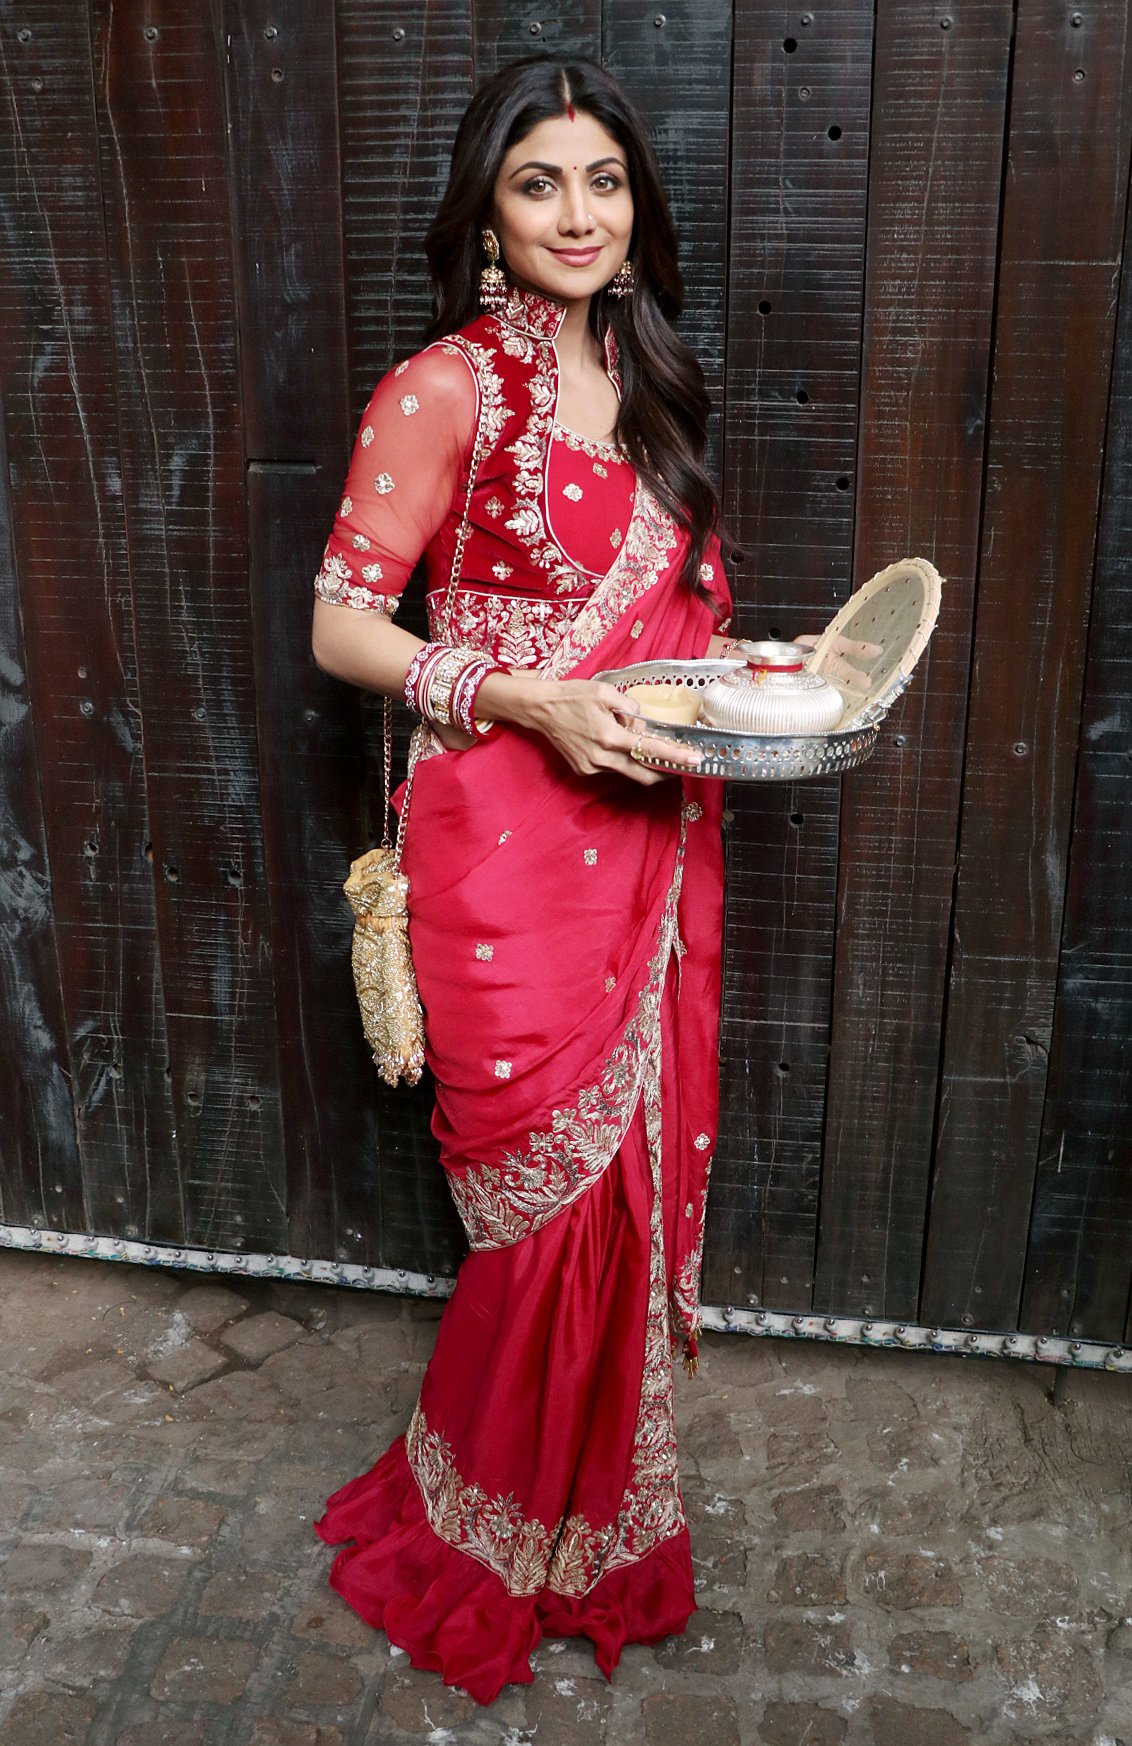 Shilpa Shetty Kundra looks gorgeous in this red sari for Karvachauth.  #ShilpaShettyKundra #CelebStyle #Bollywood #Red #Sari #Karvachauth https://t.co/3skYln4USv